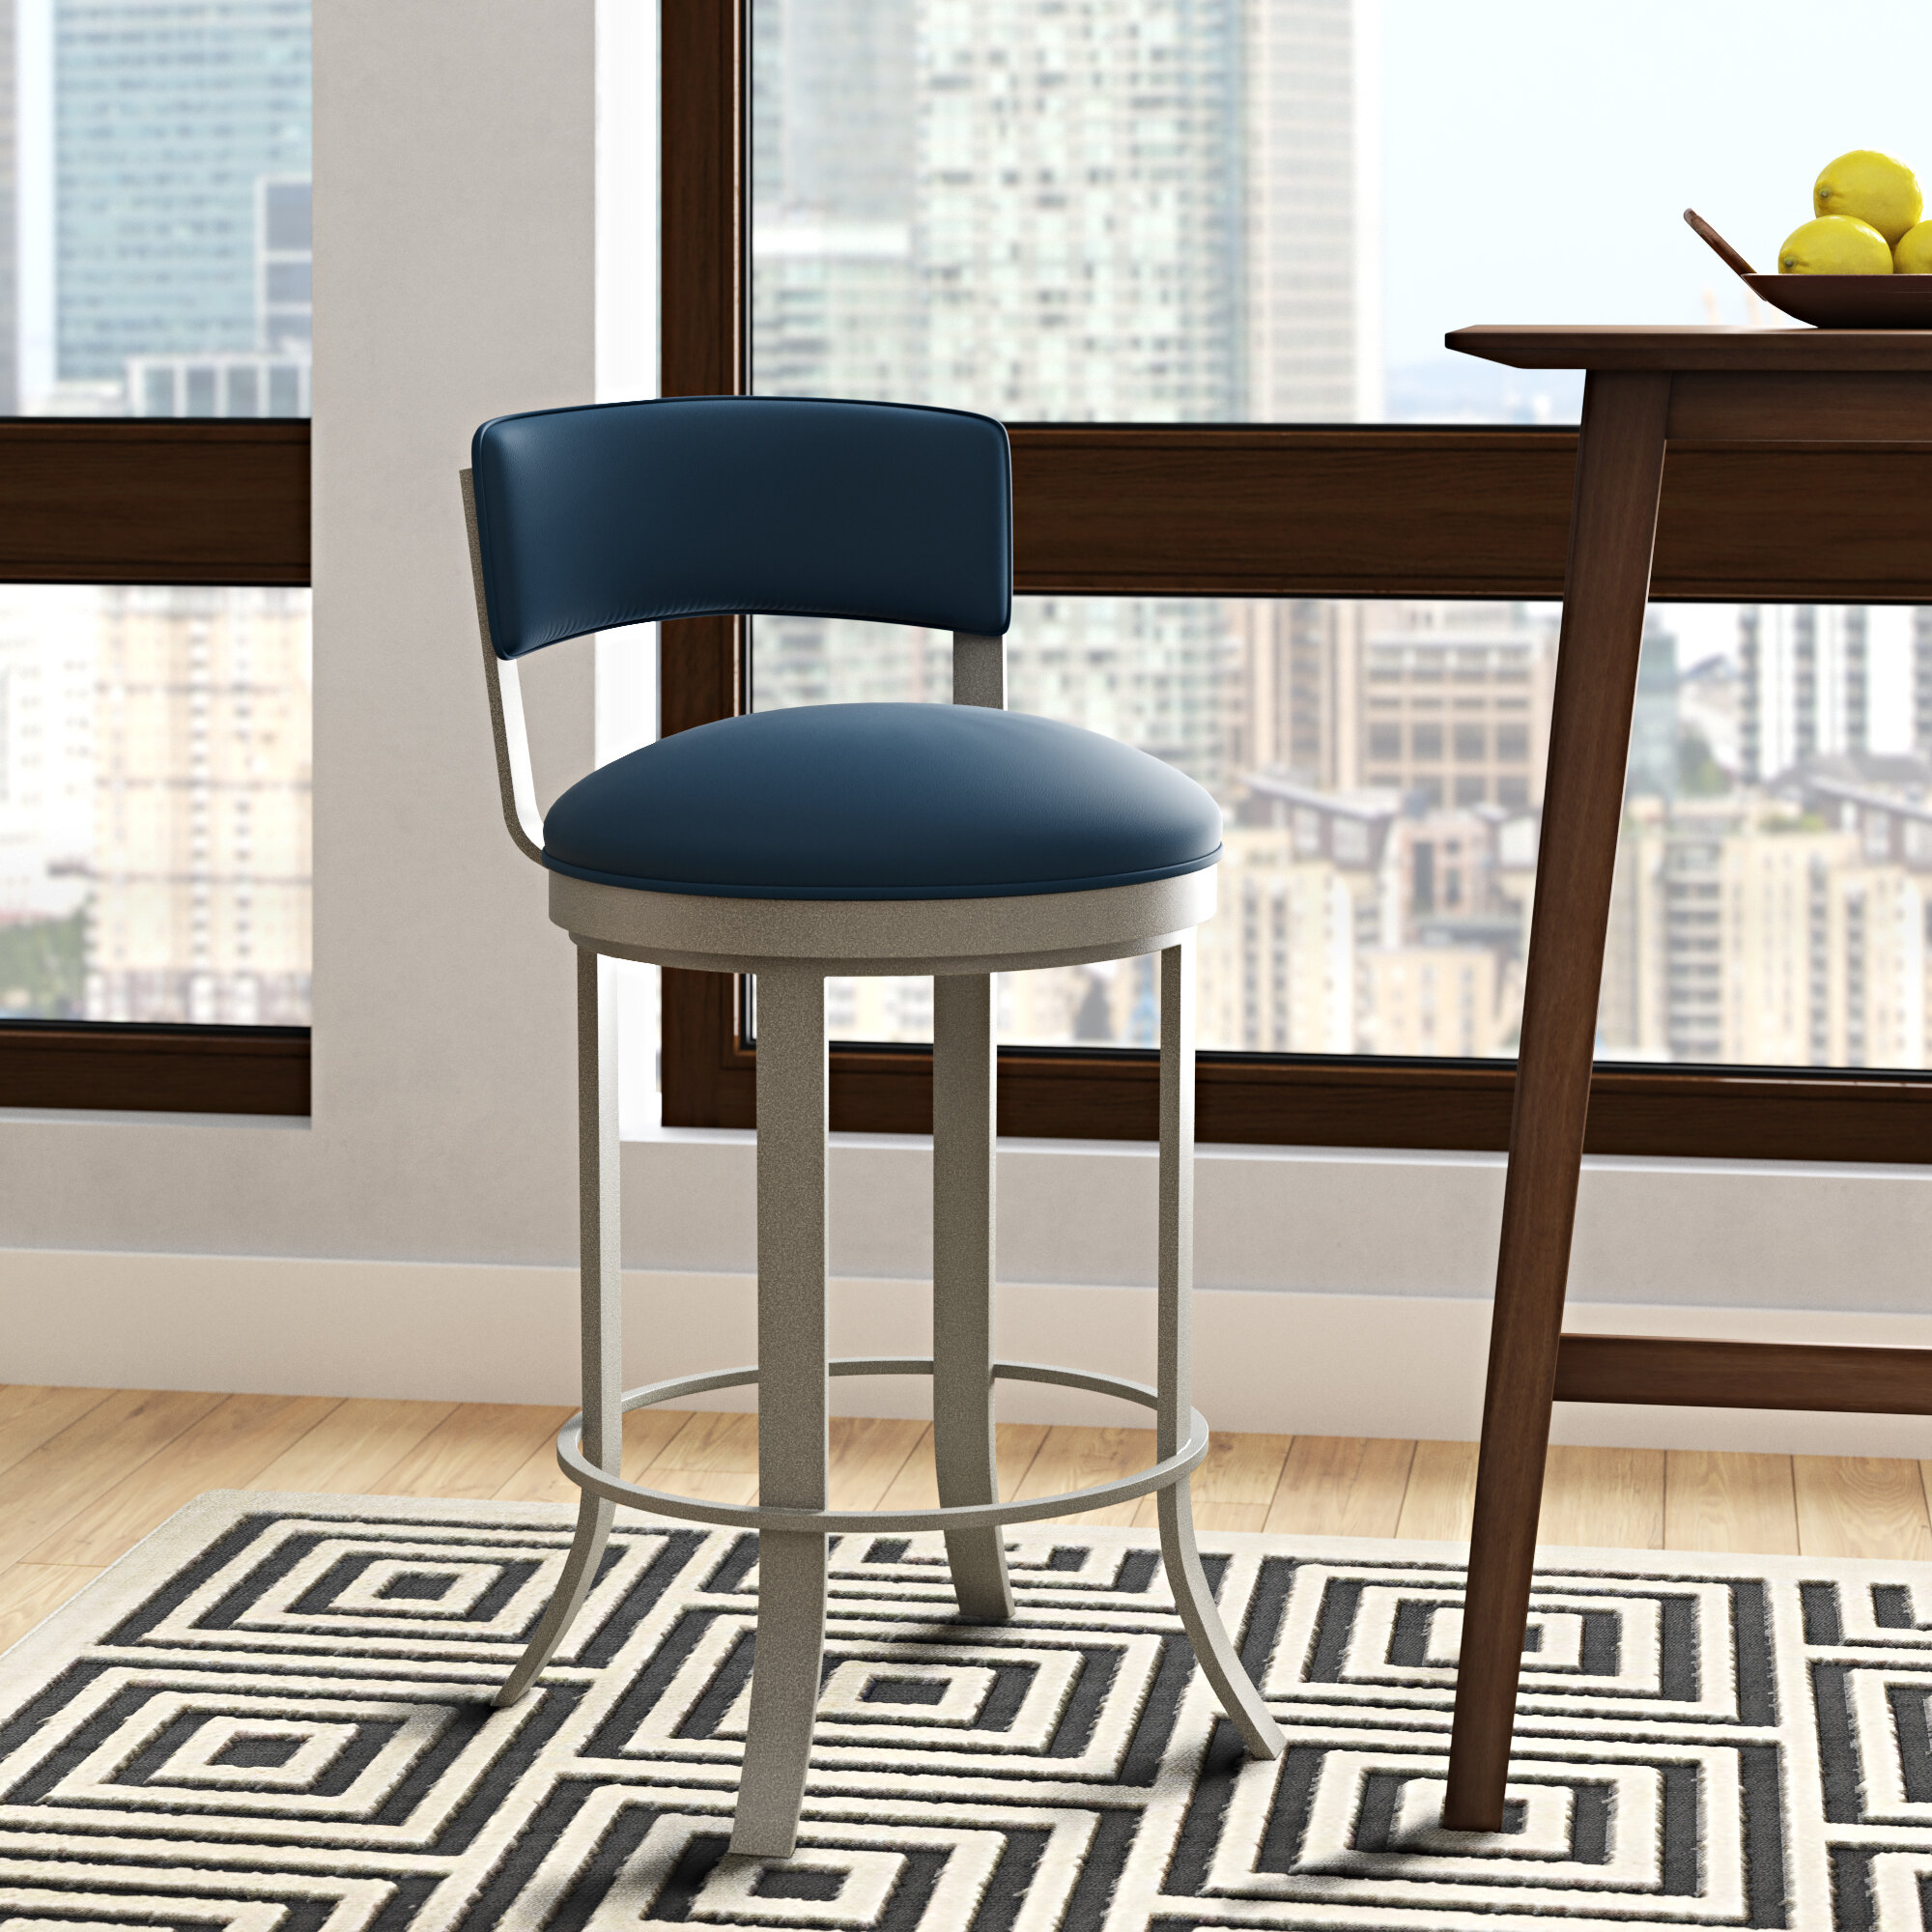 Brilliant Winslow Bar Counter Swivel Stool Unemploymentrelief Wooden Chair Designs For Living Room Unemploymentrelieforg